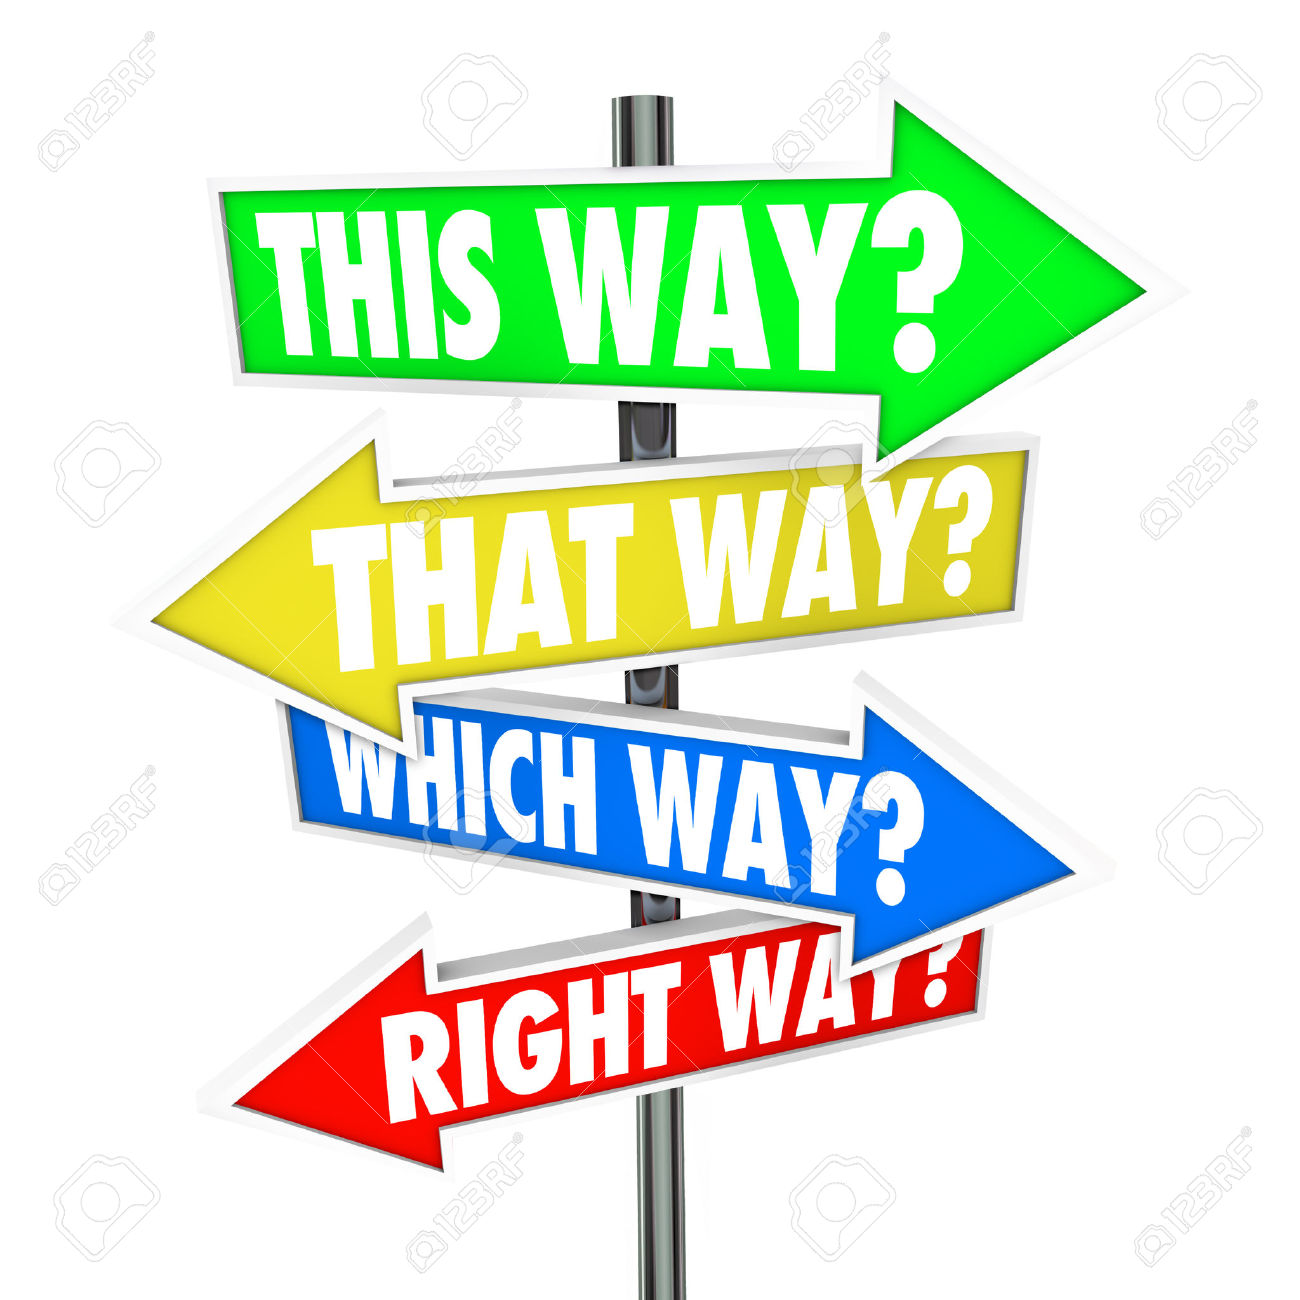 29799253-This-Way-That-Way-Which-Way-Right-Way-words-in-a-question-on-arrow-road-signs-showing-many-choices-f-Stock-Photo